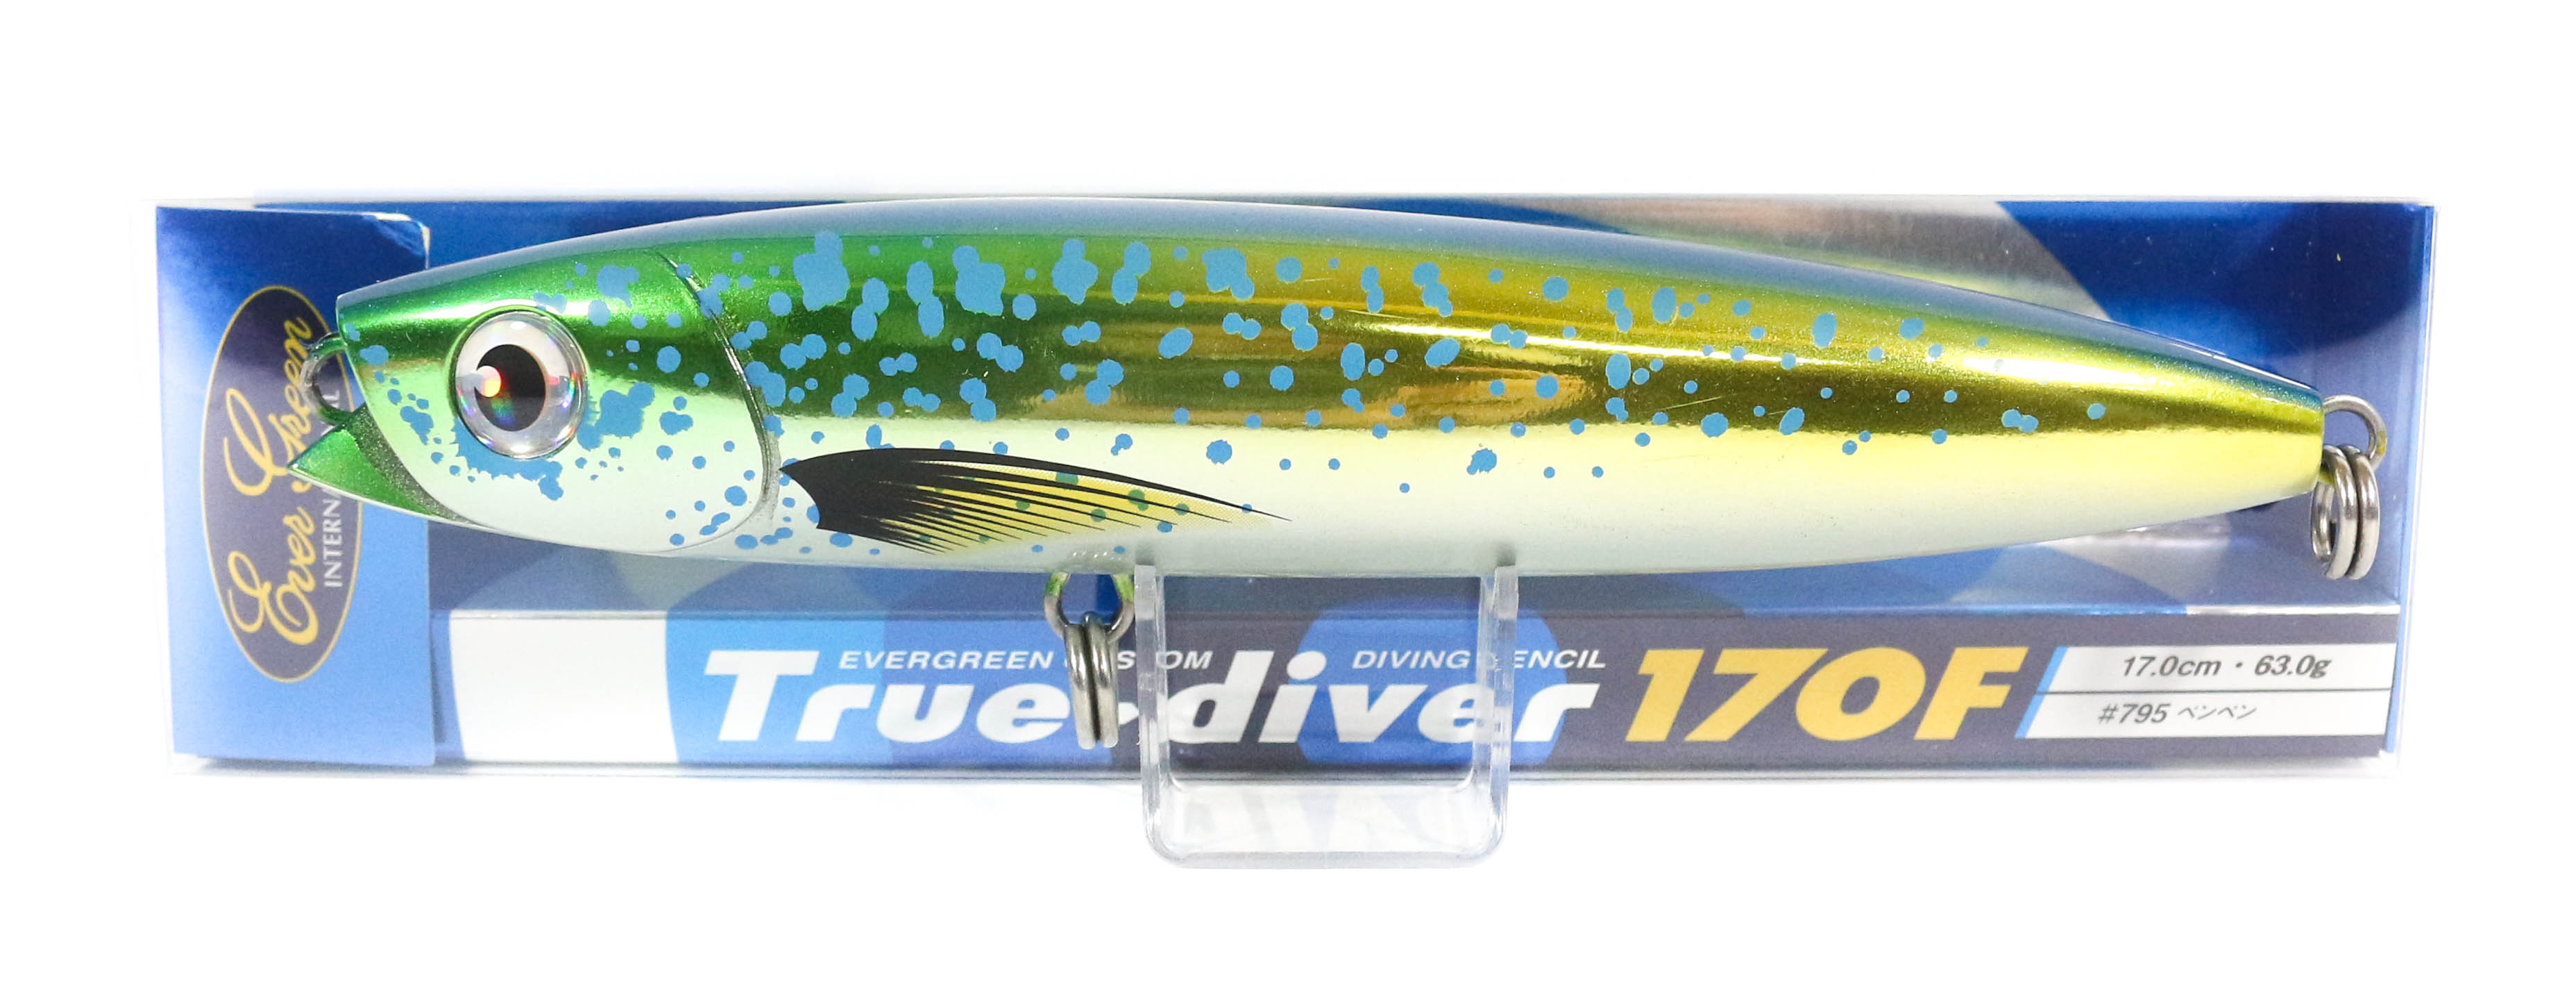 Sale Evergreen True Diver 170F Pencil 63 gram Floating Lure 795 (8245)